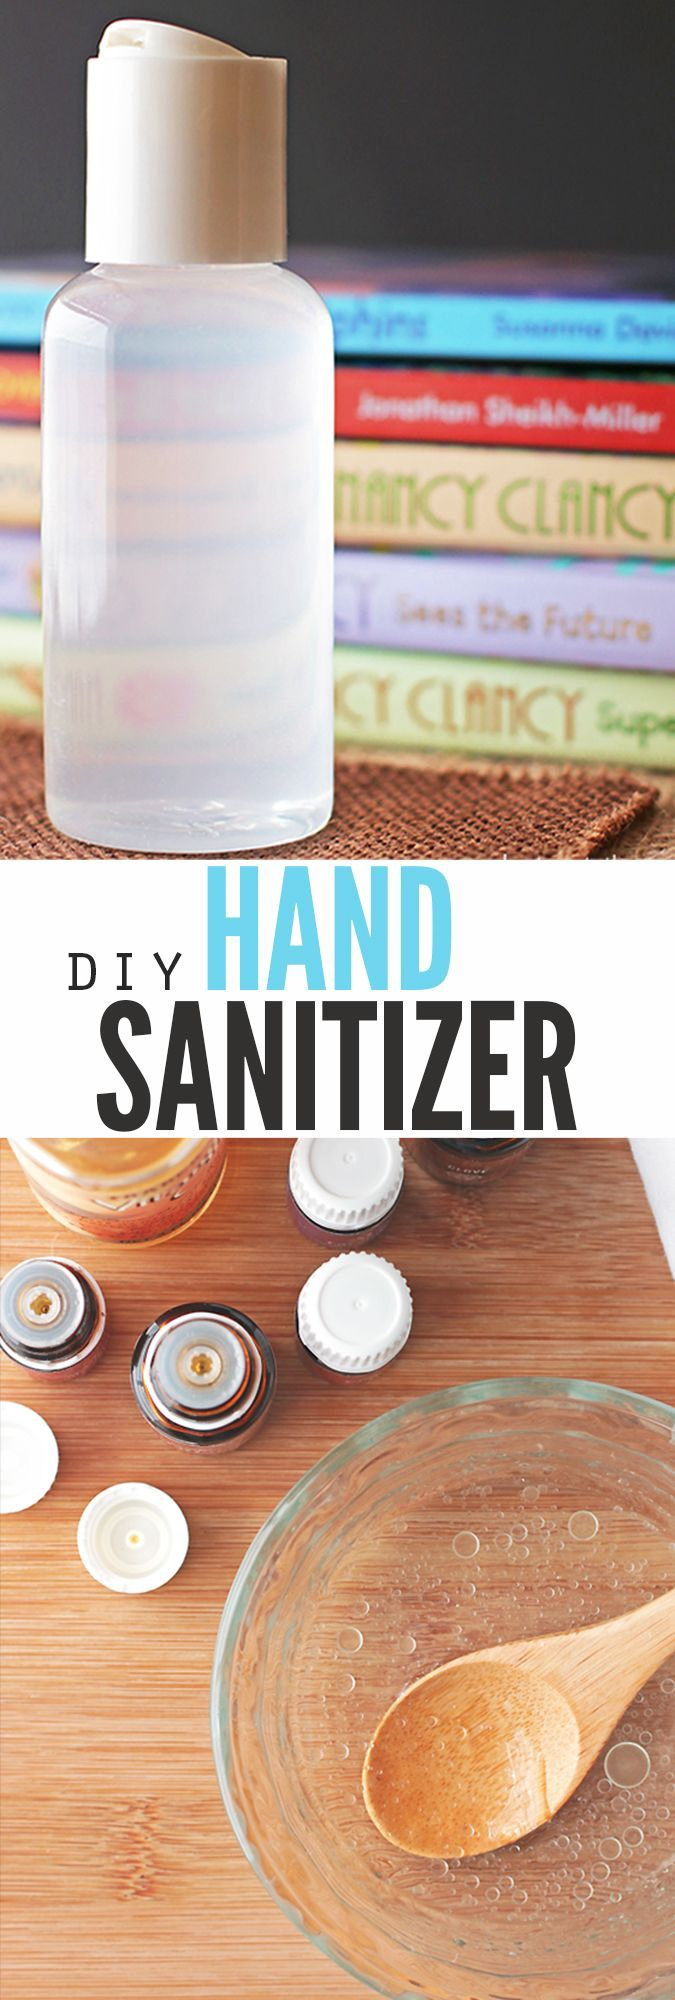 all natural  ready for do Perfect clothes school  making essential what a I keep minute  it     s the sanitizer  at AND avoid on easy oils you is in hand smell DontWastetheCrumbs com but a children Not of the mix match    to and only germs homemade under apparel recipe hand hand  away  have and This buy  sanitizer Plus good is refuse we kids triclosan